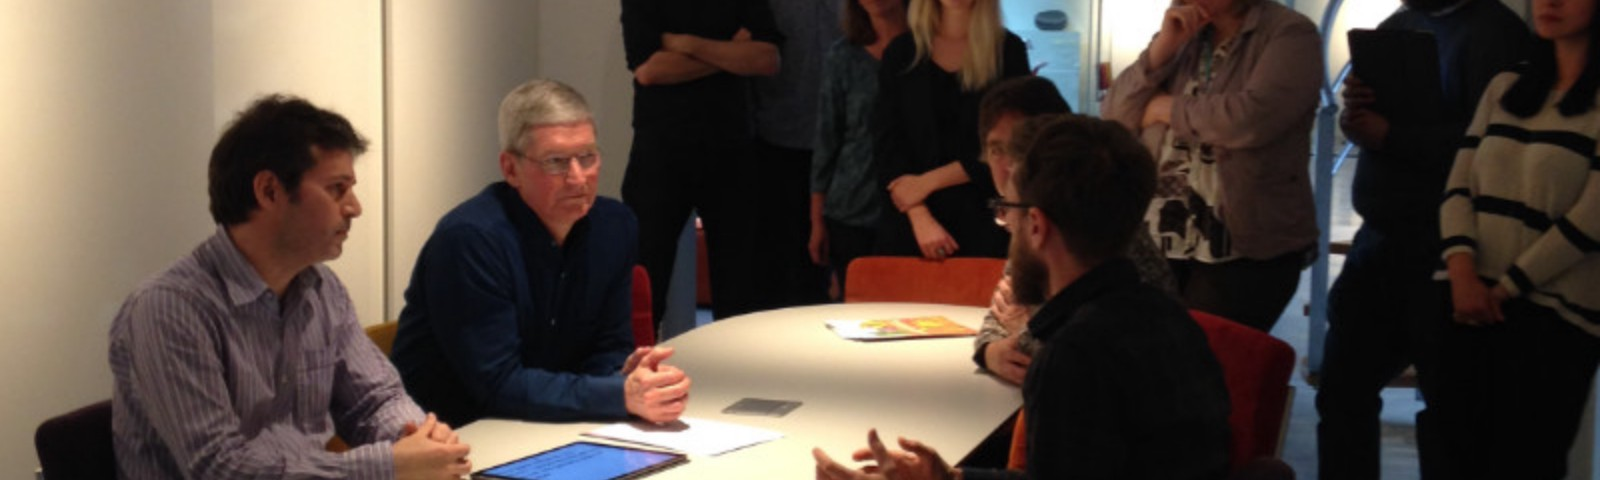 Presenting Proloquo4Text to Tim Cook from Apple.